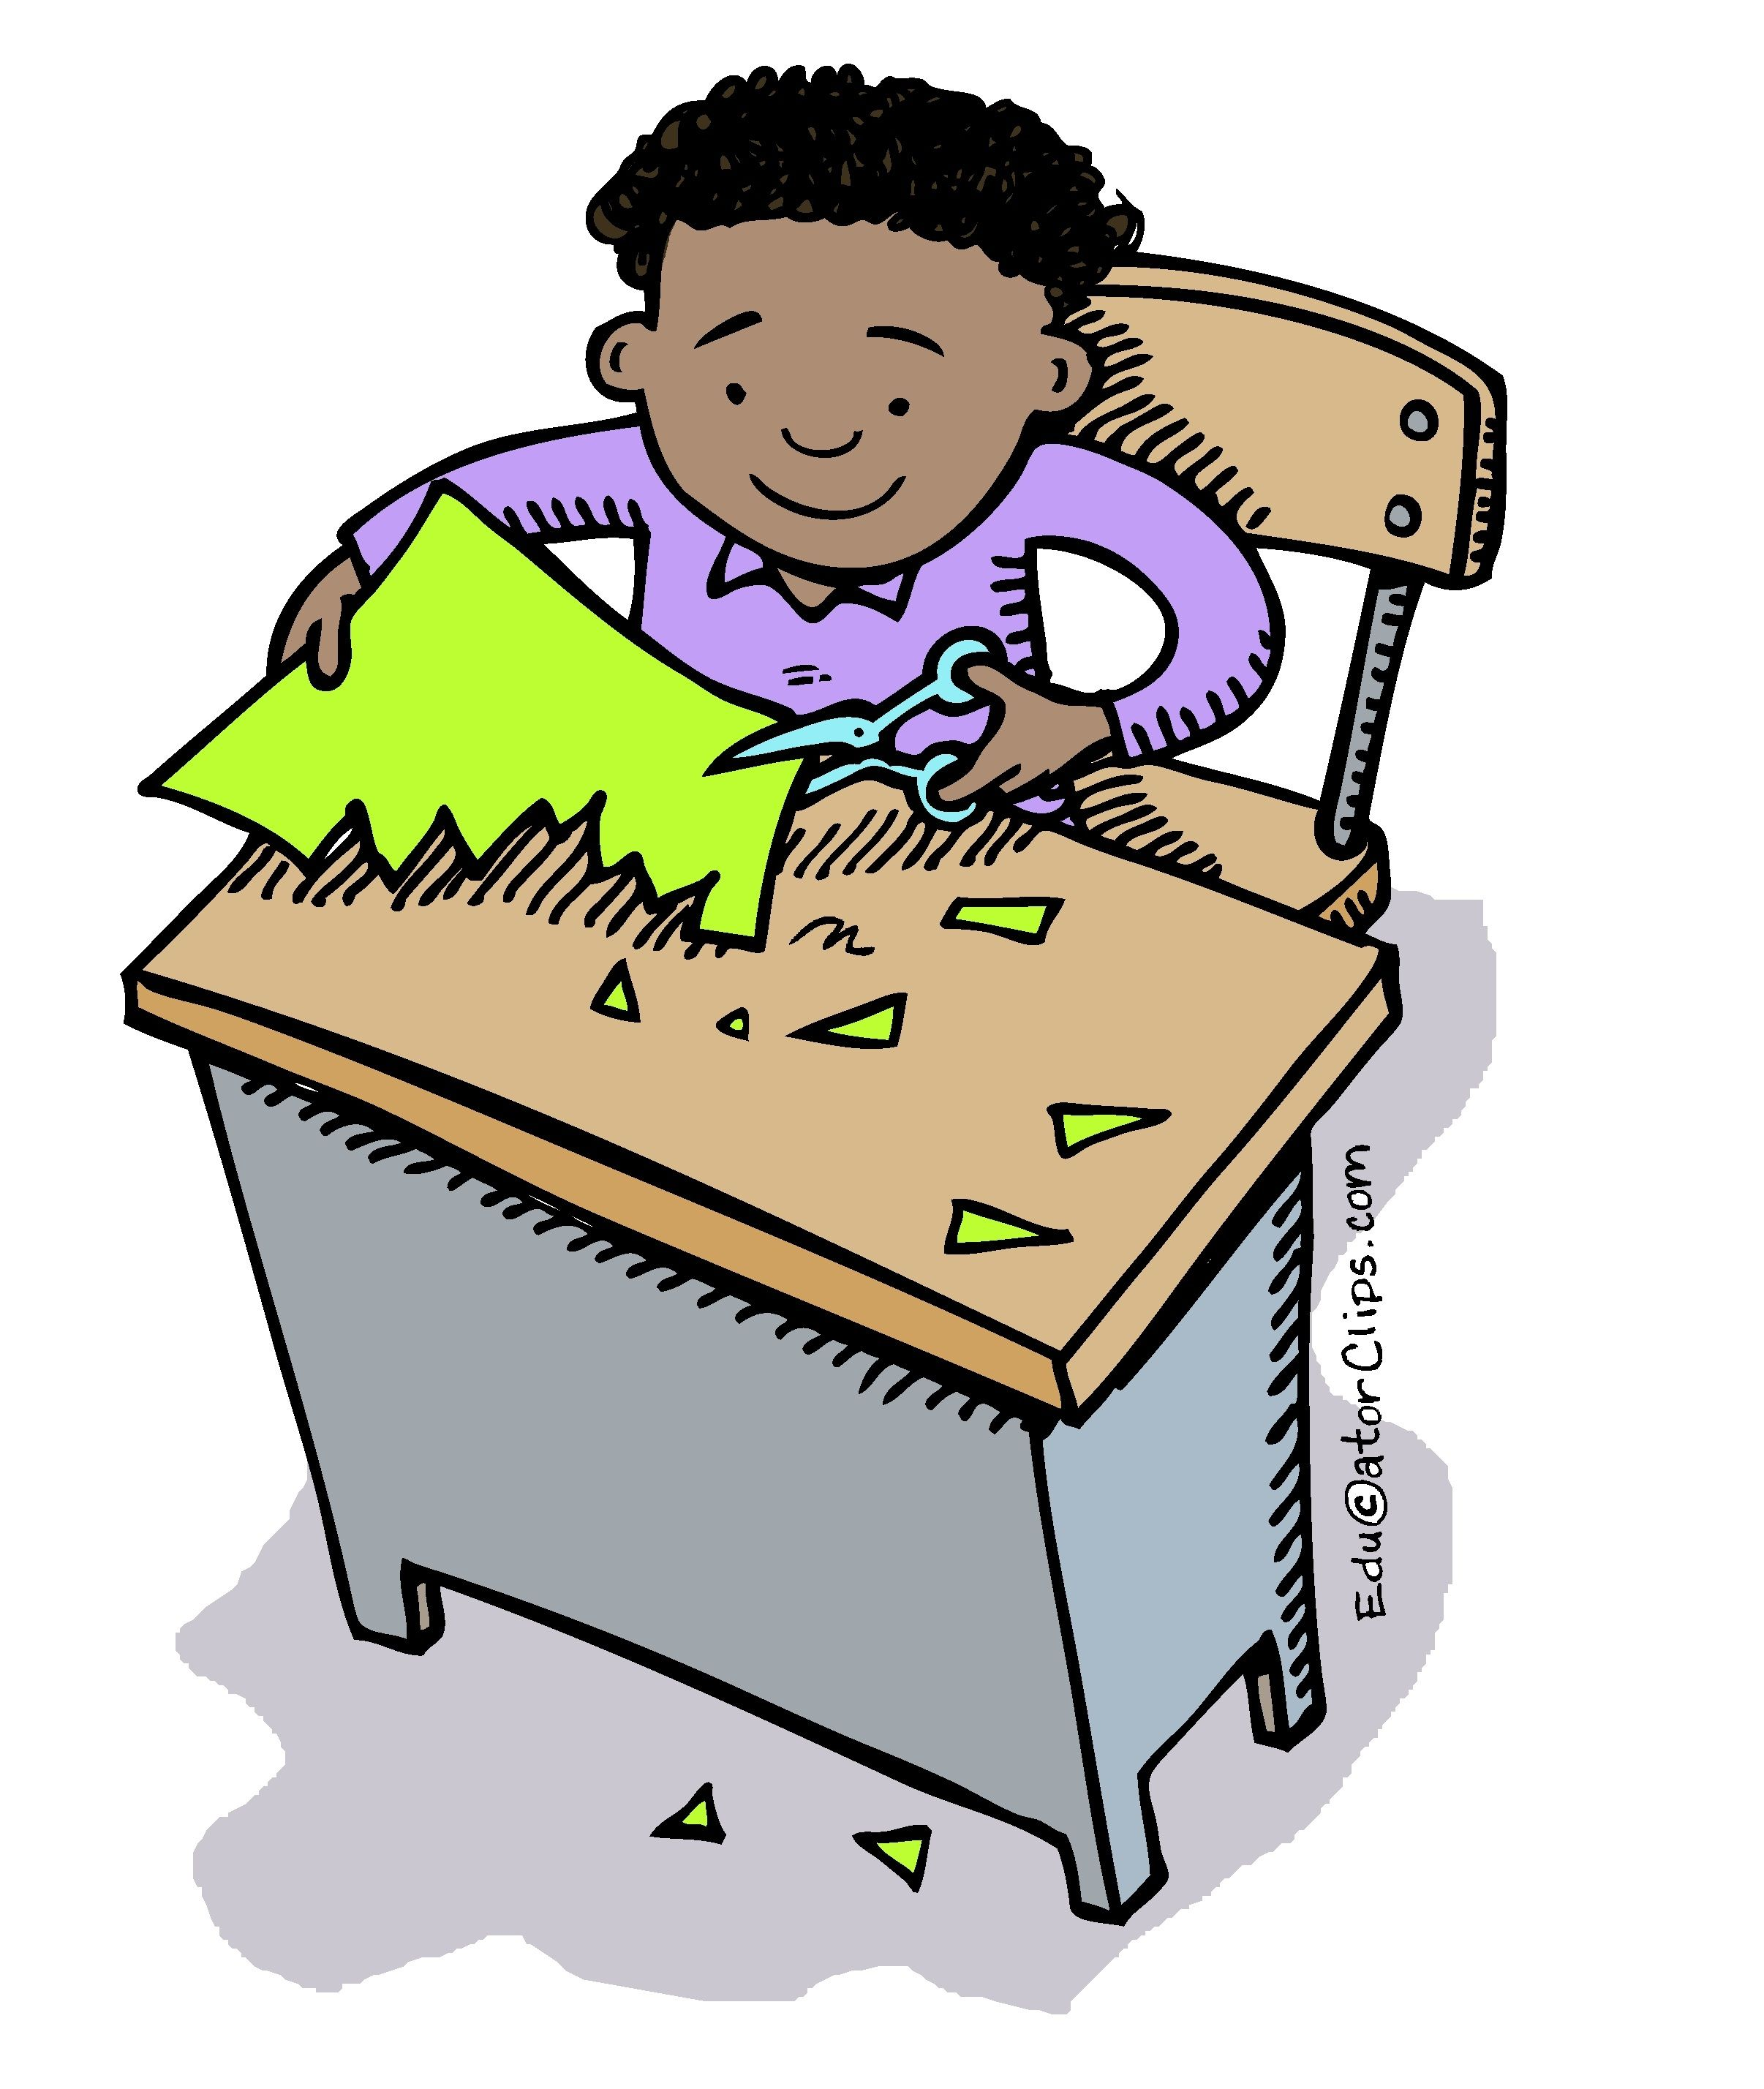 Kid Cutting with Scissors Clip Art by Mark A. Hicks.